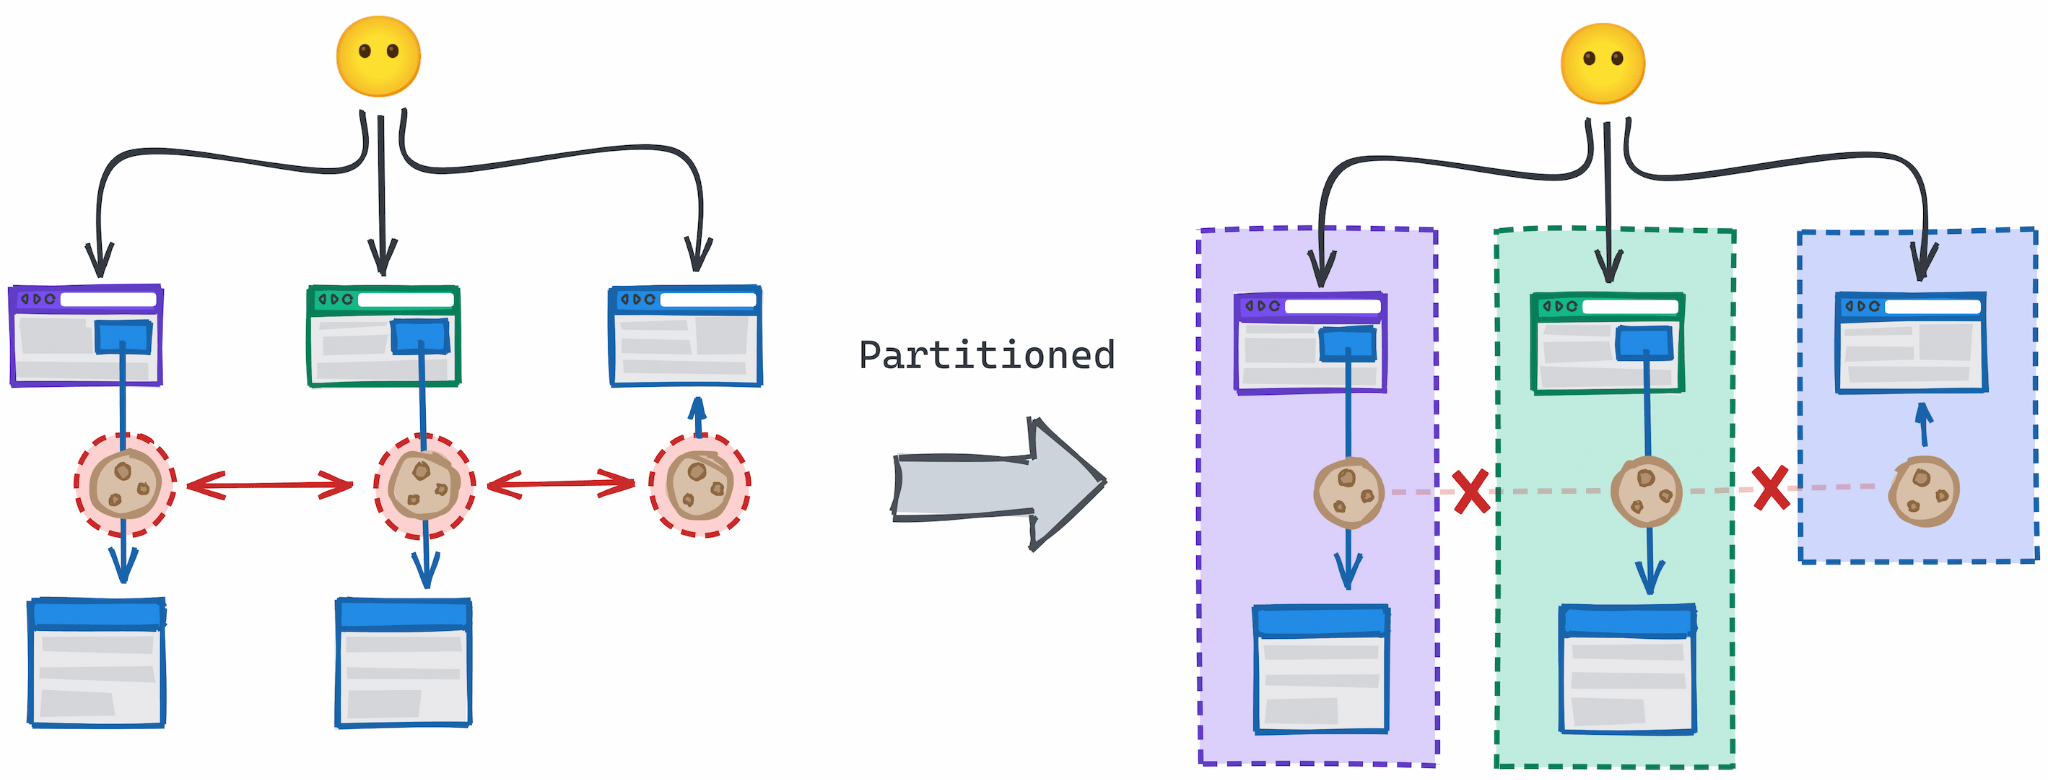 Diagram showing the unpartitioned state where the same third-party cookie is accessible in multiple cross-site contexts in contrast to a partitioned model where each top-level context has a separate instance of the cross-site cookie preventing linking activity across those sites.